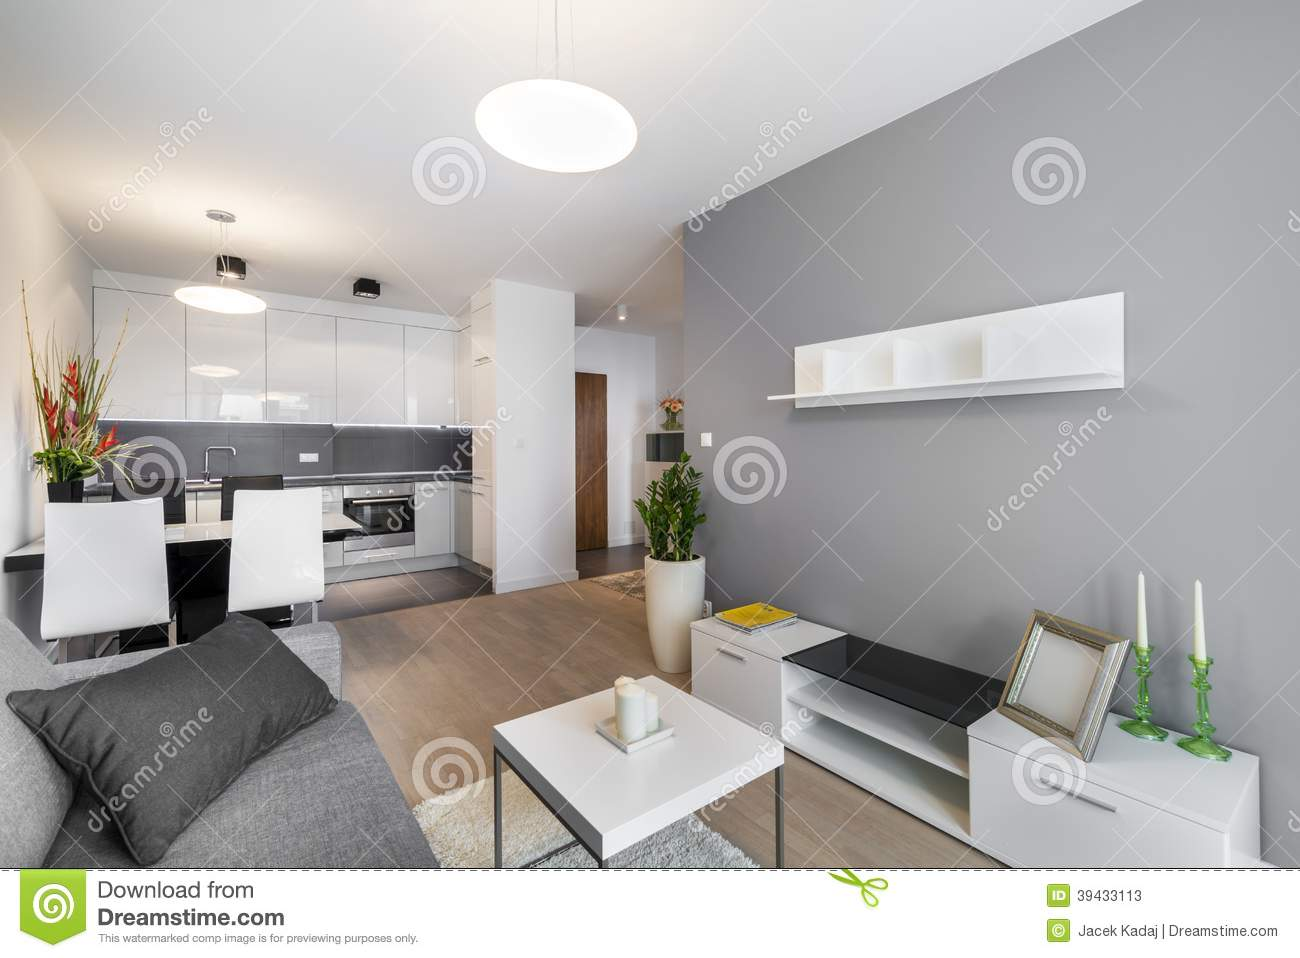 Modern Living Room With Kitchen Interior Design Modern Interior Design Living Room Stock Image Image Of Luxury